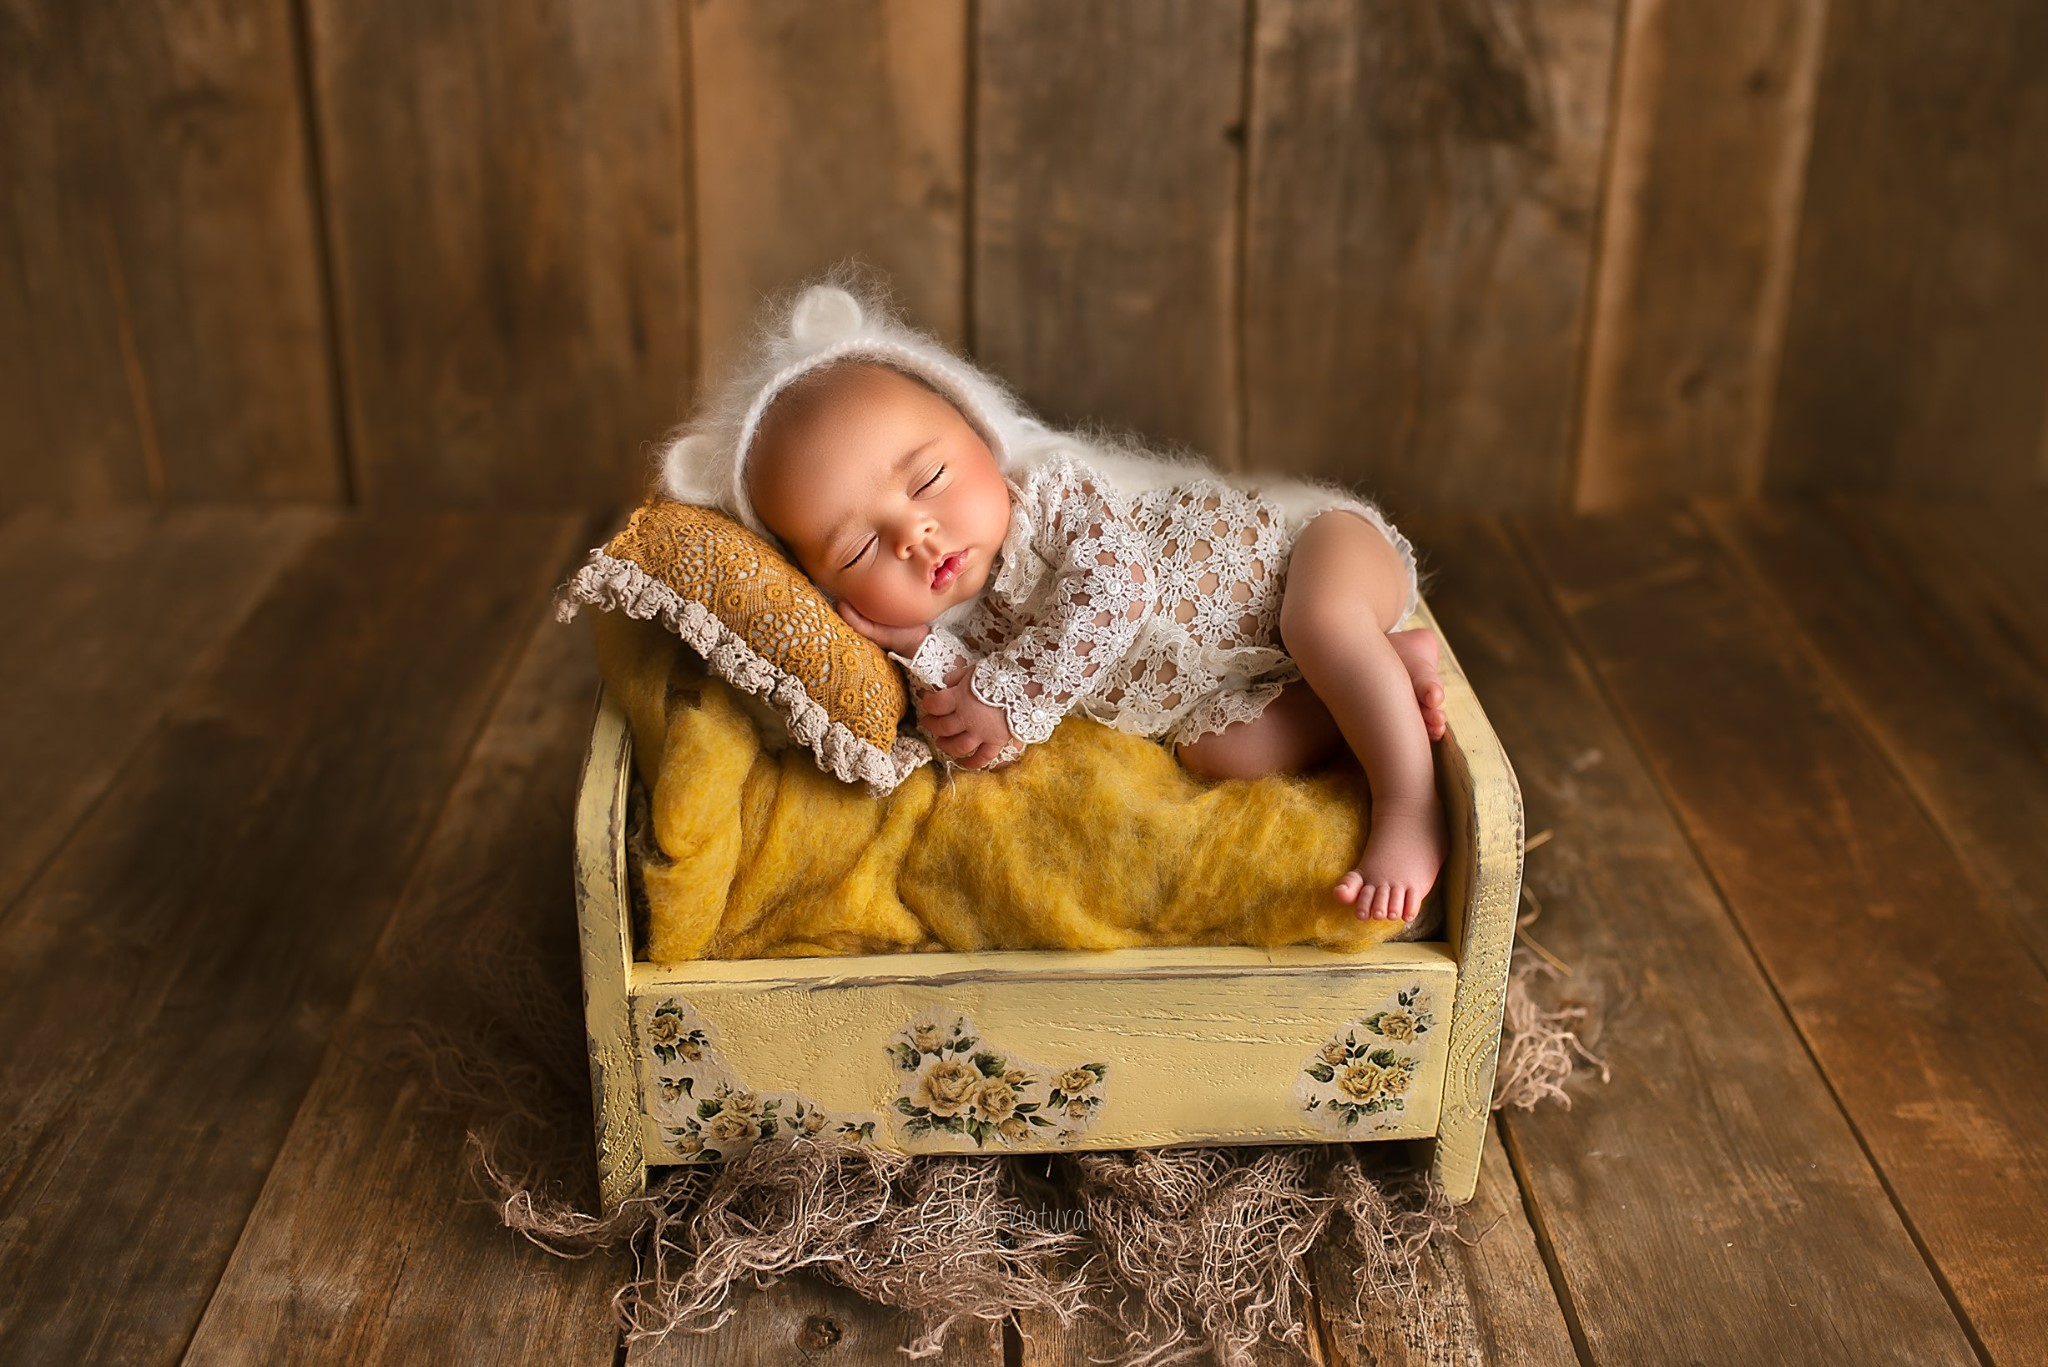 Newborn sleeping on a wooden bed prop for a newborn photography session by Sujata Setia | But Natural Photography